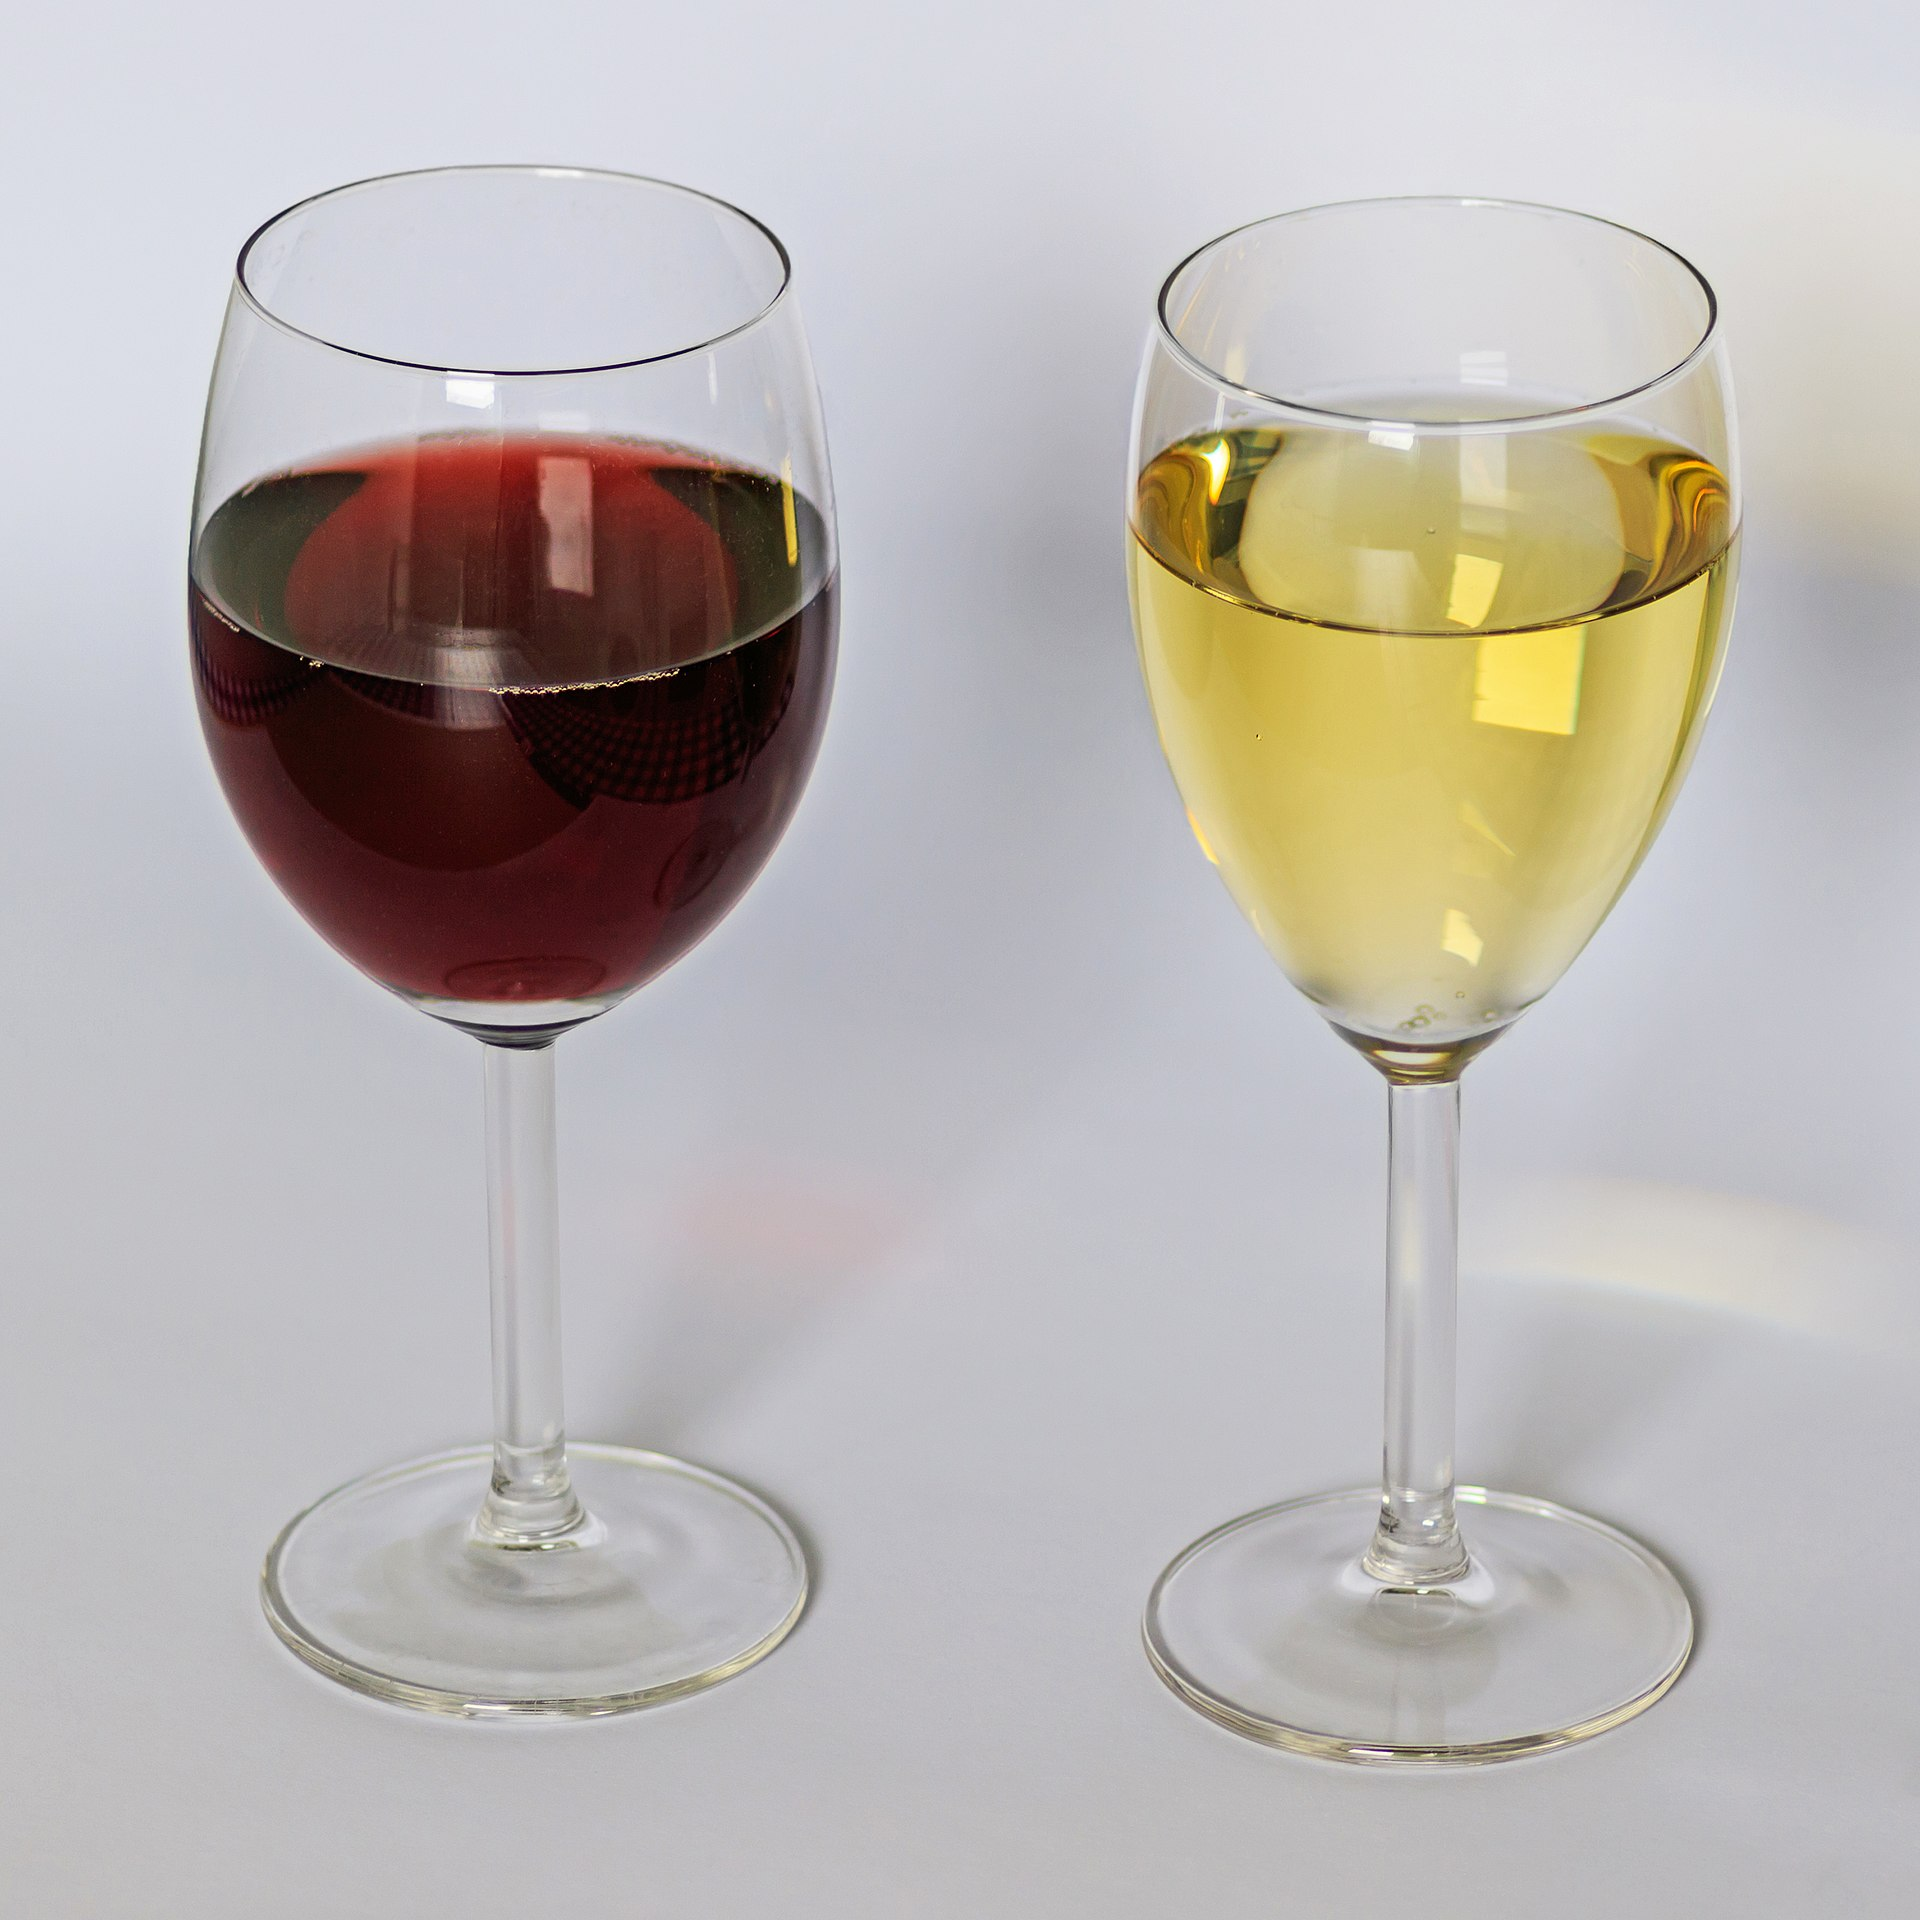 Big Red Wine Glasses Wine Wikipedia